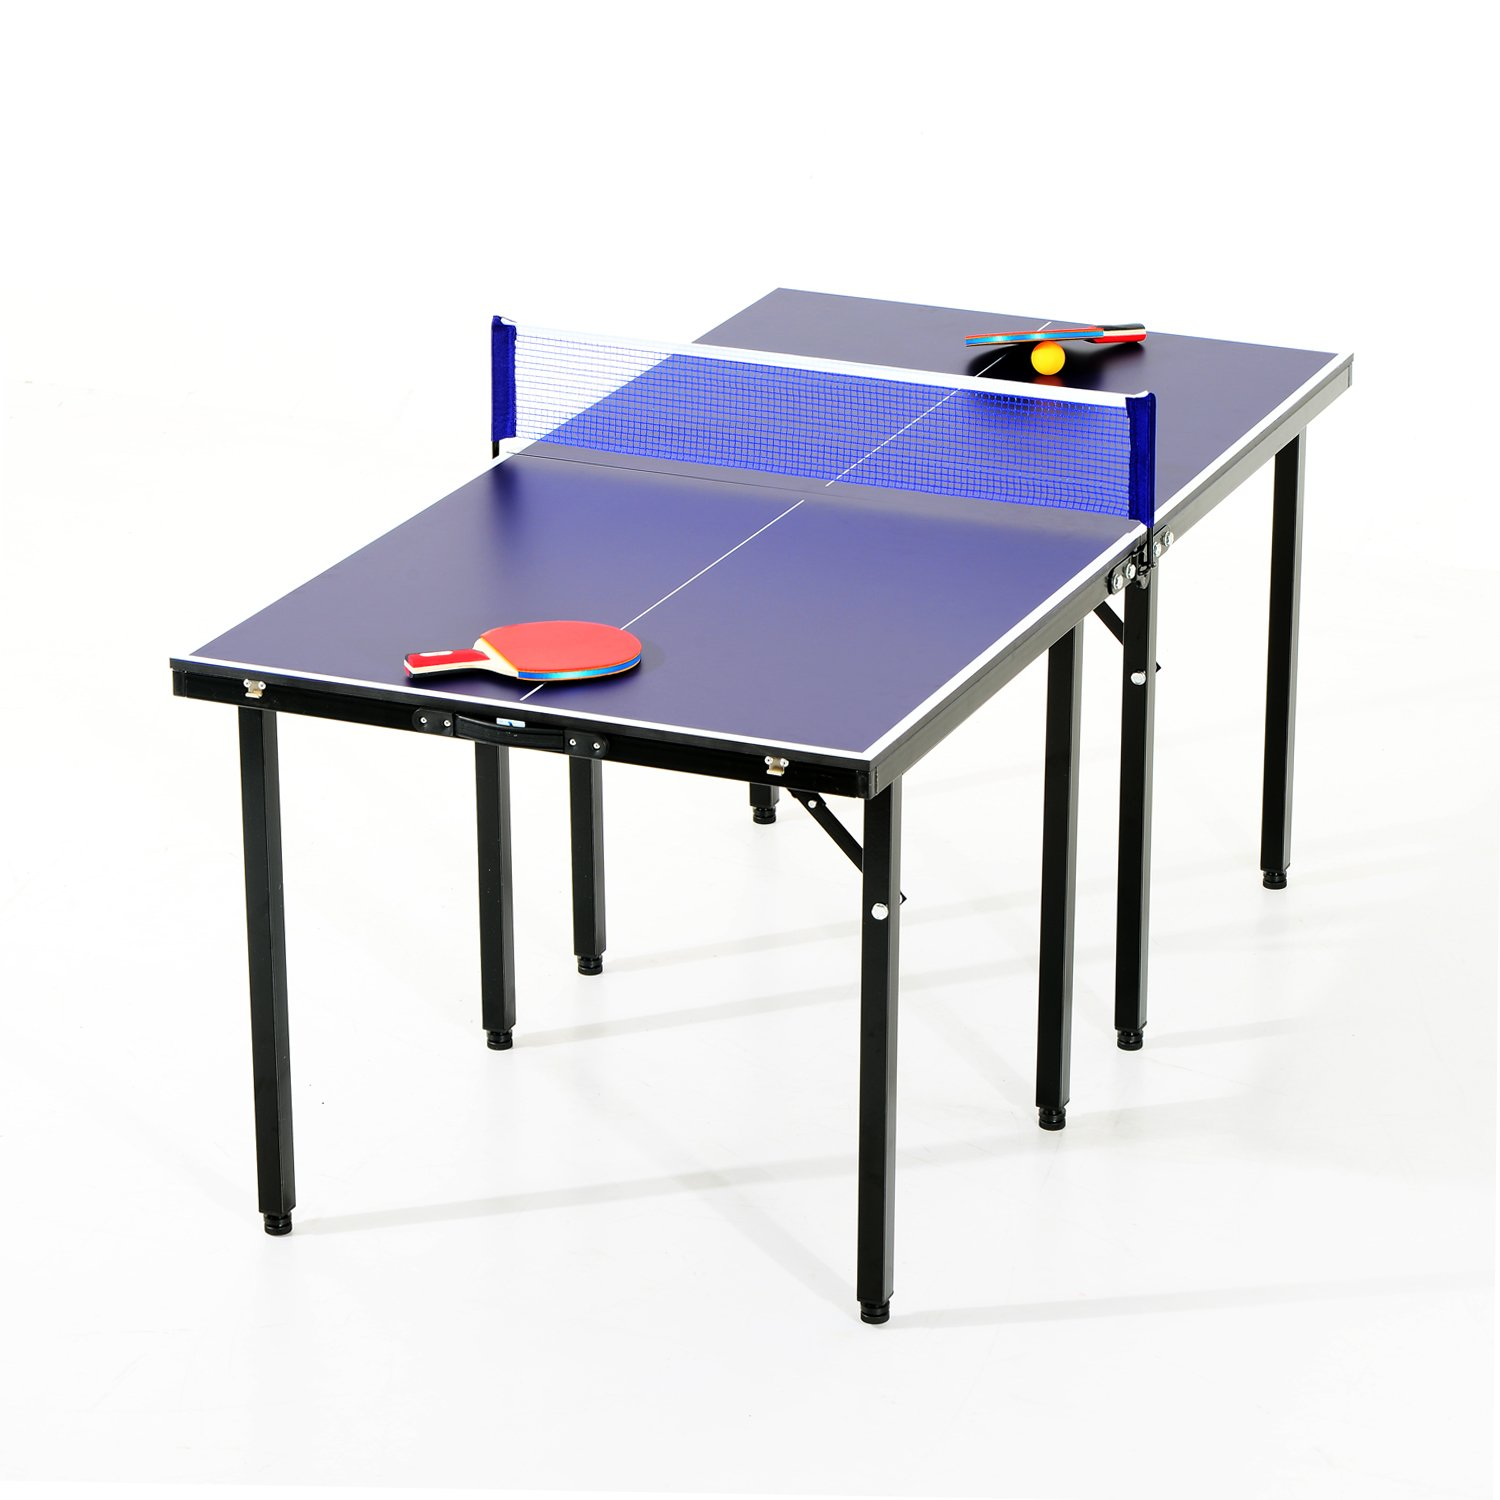 Delightful Amazon.com: Aosom 5u0027 Folding Indoor/Outdoor Table Tennis Table Set: Kitchen  U0026 Dining